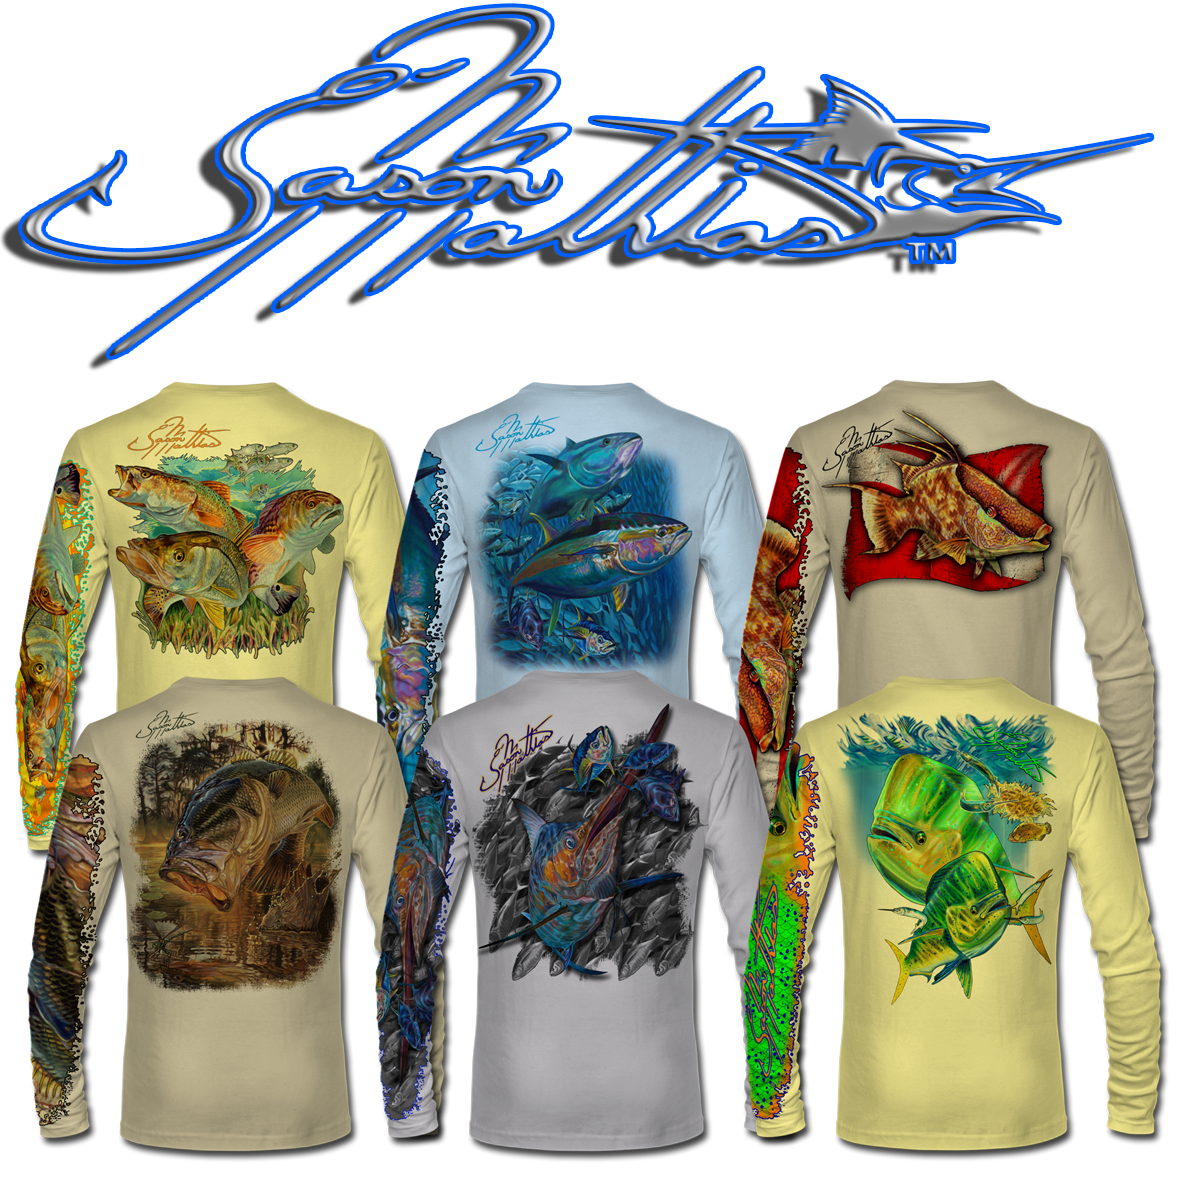 jason-mathias-shirt-line-for-gamefisherman-sportfisherman-divers-sperfishing-gear-apparel-performance-wear.png